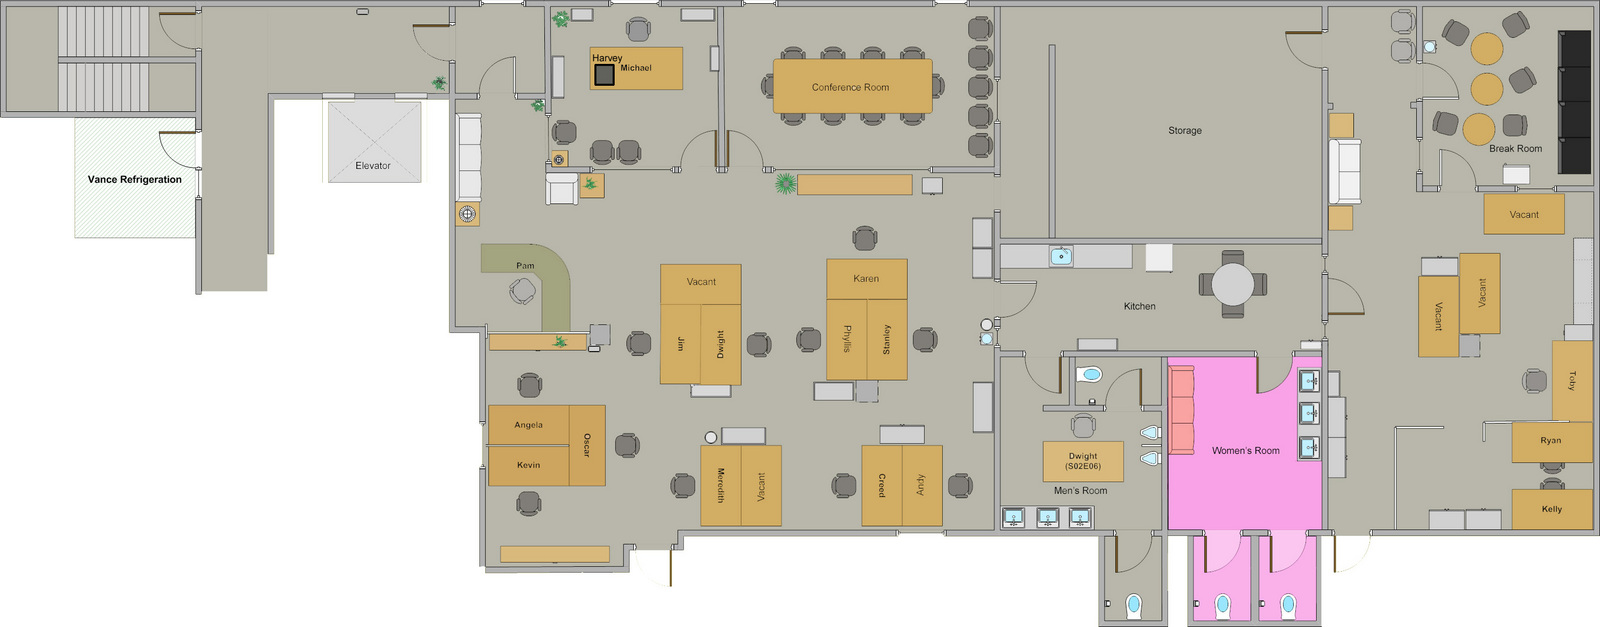 I_got_bored_so_i_decided_to_make_a_foor_plan_of on Dunder Mifflin Office Layout